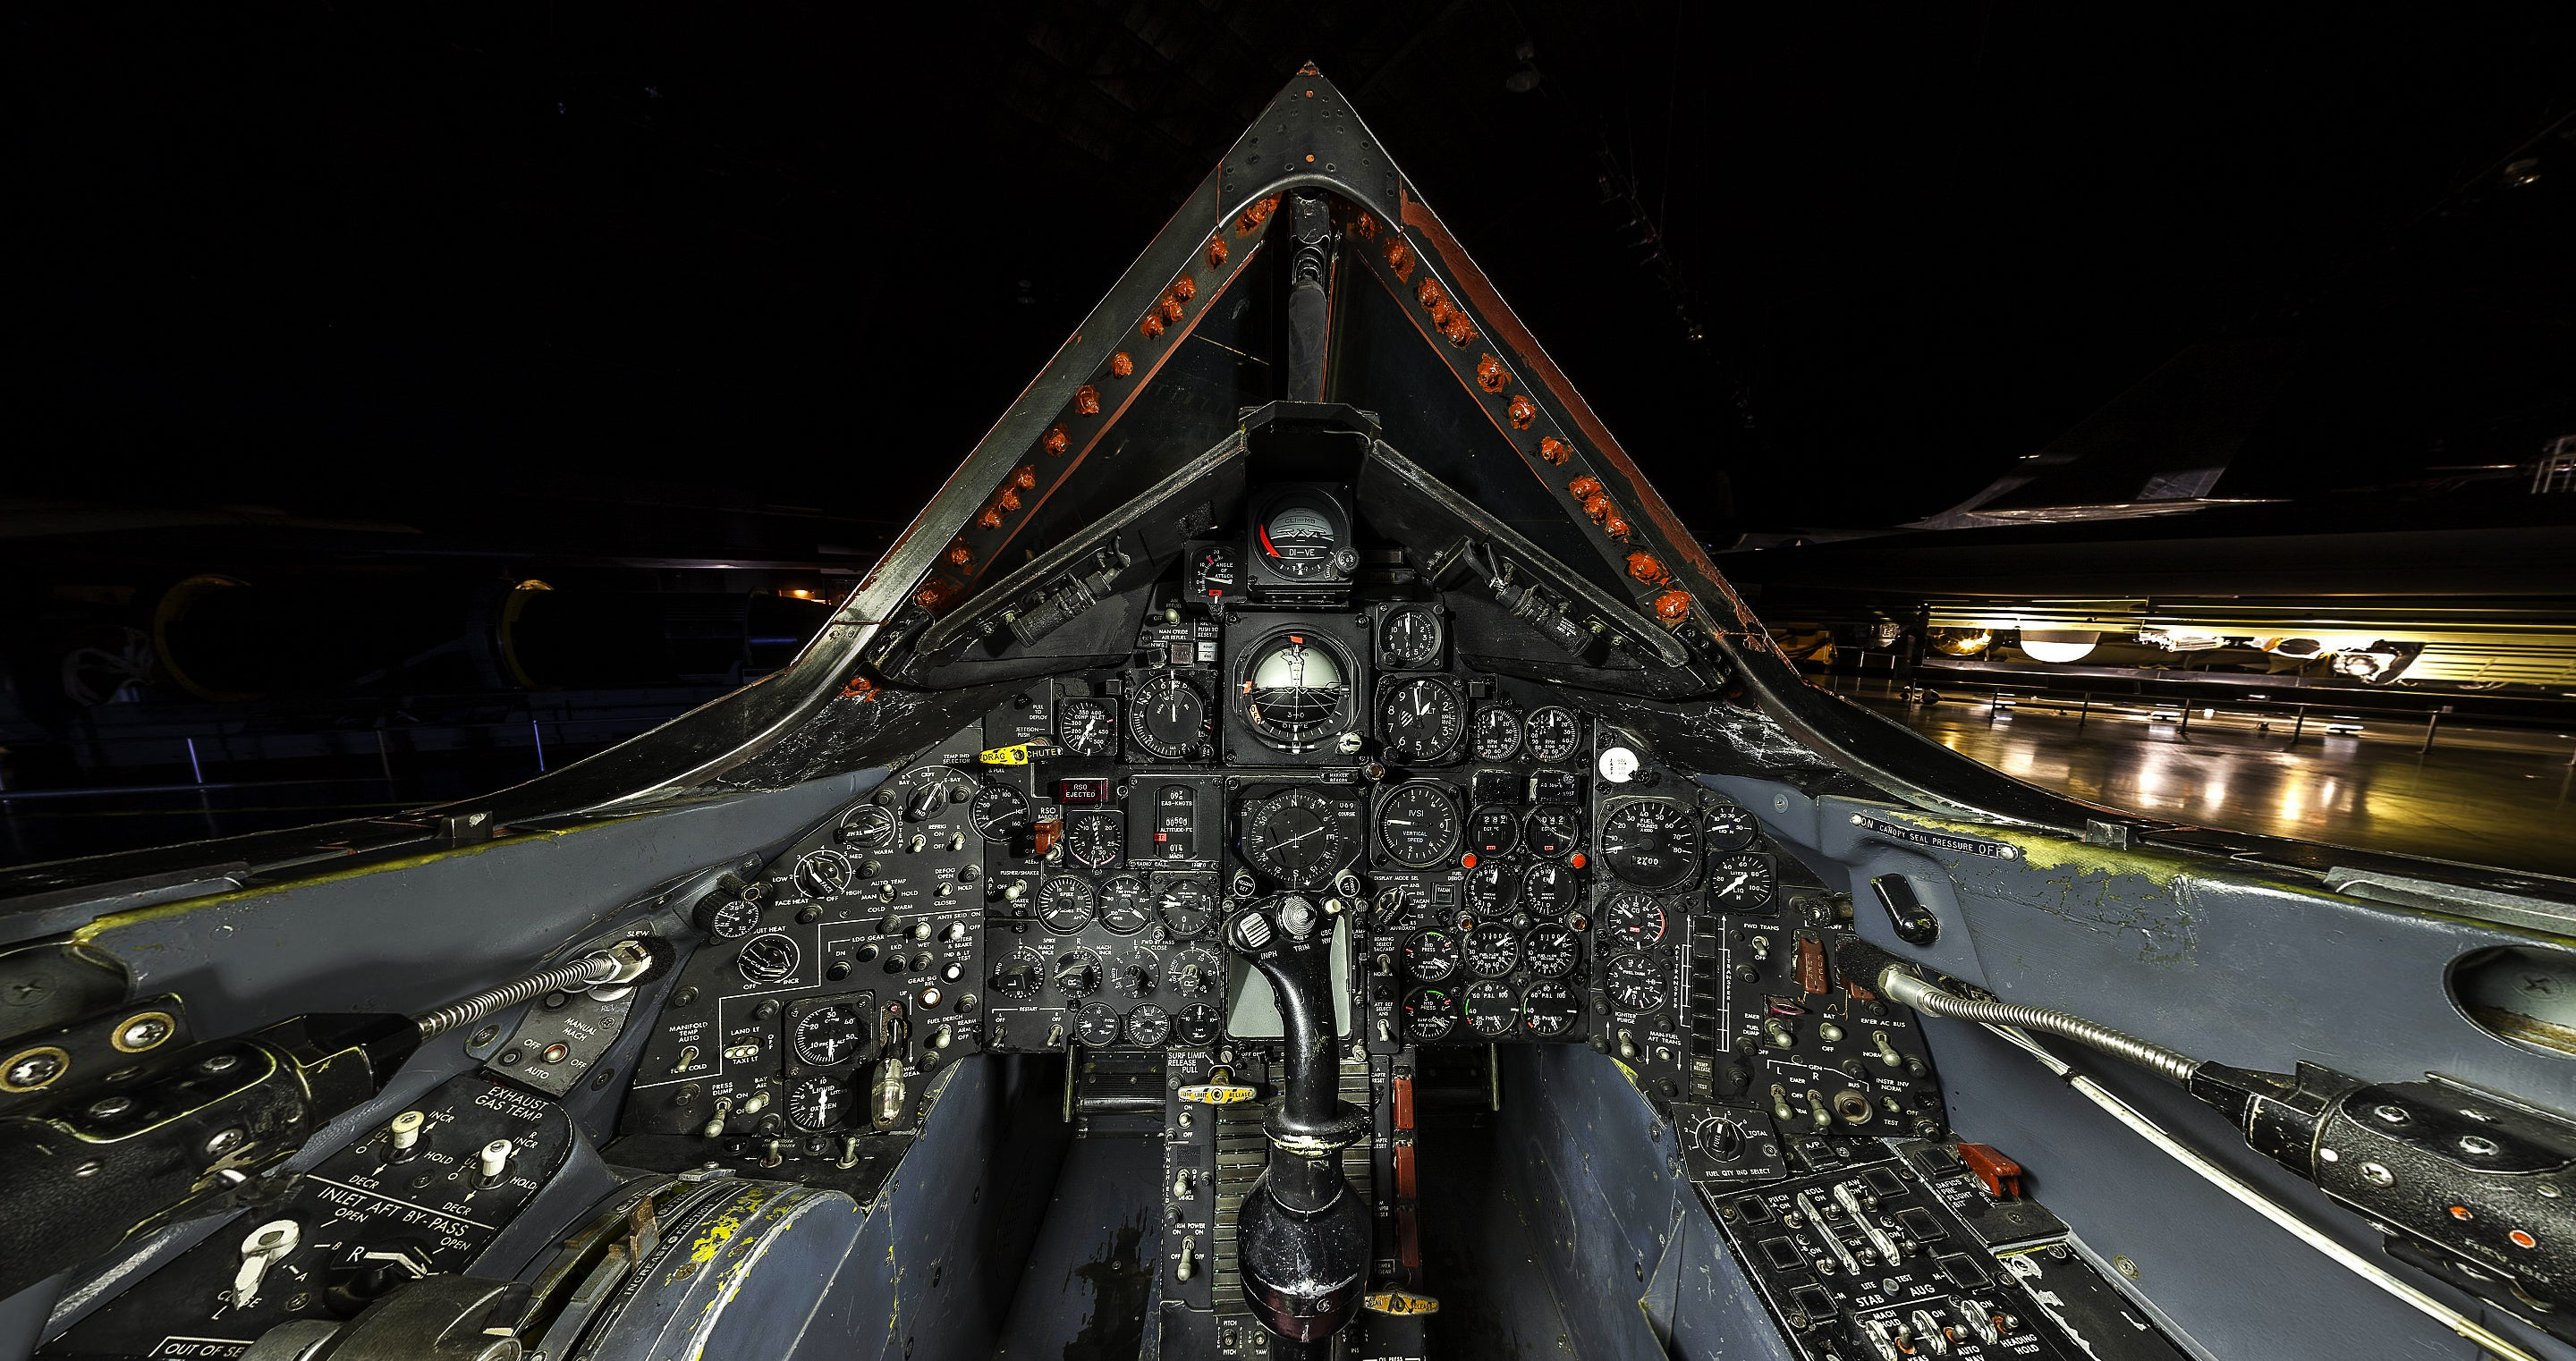 The SR-71 Blackbird Took Its First Flight 50 Years Ago Today